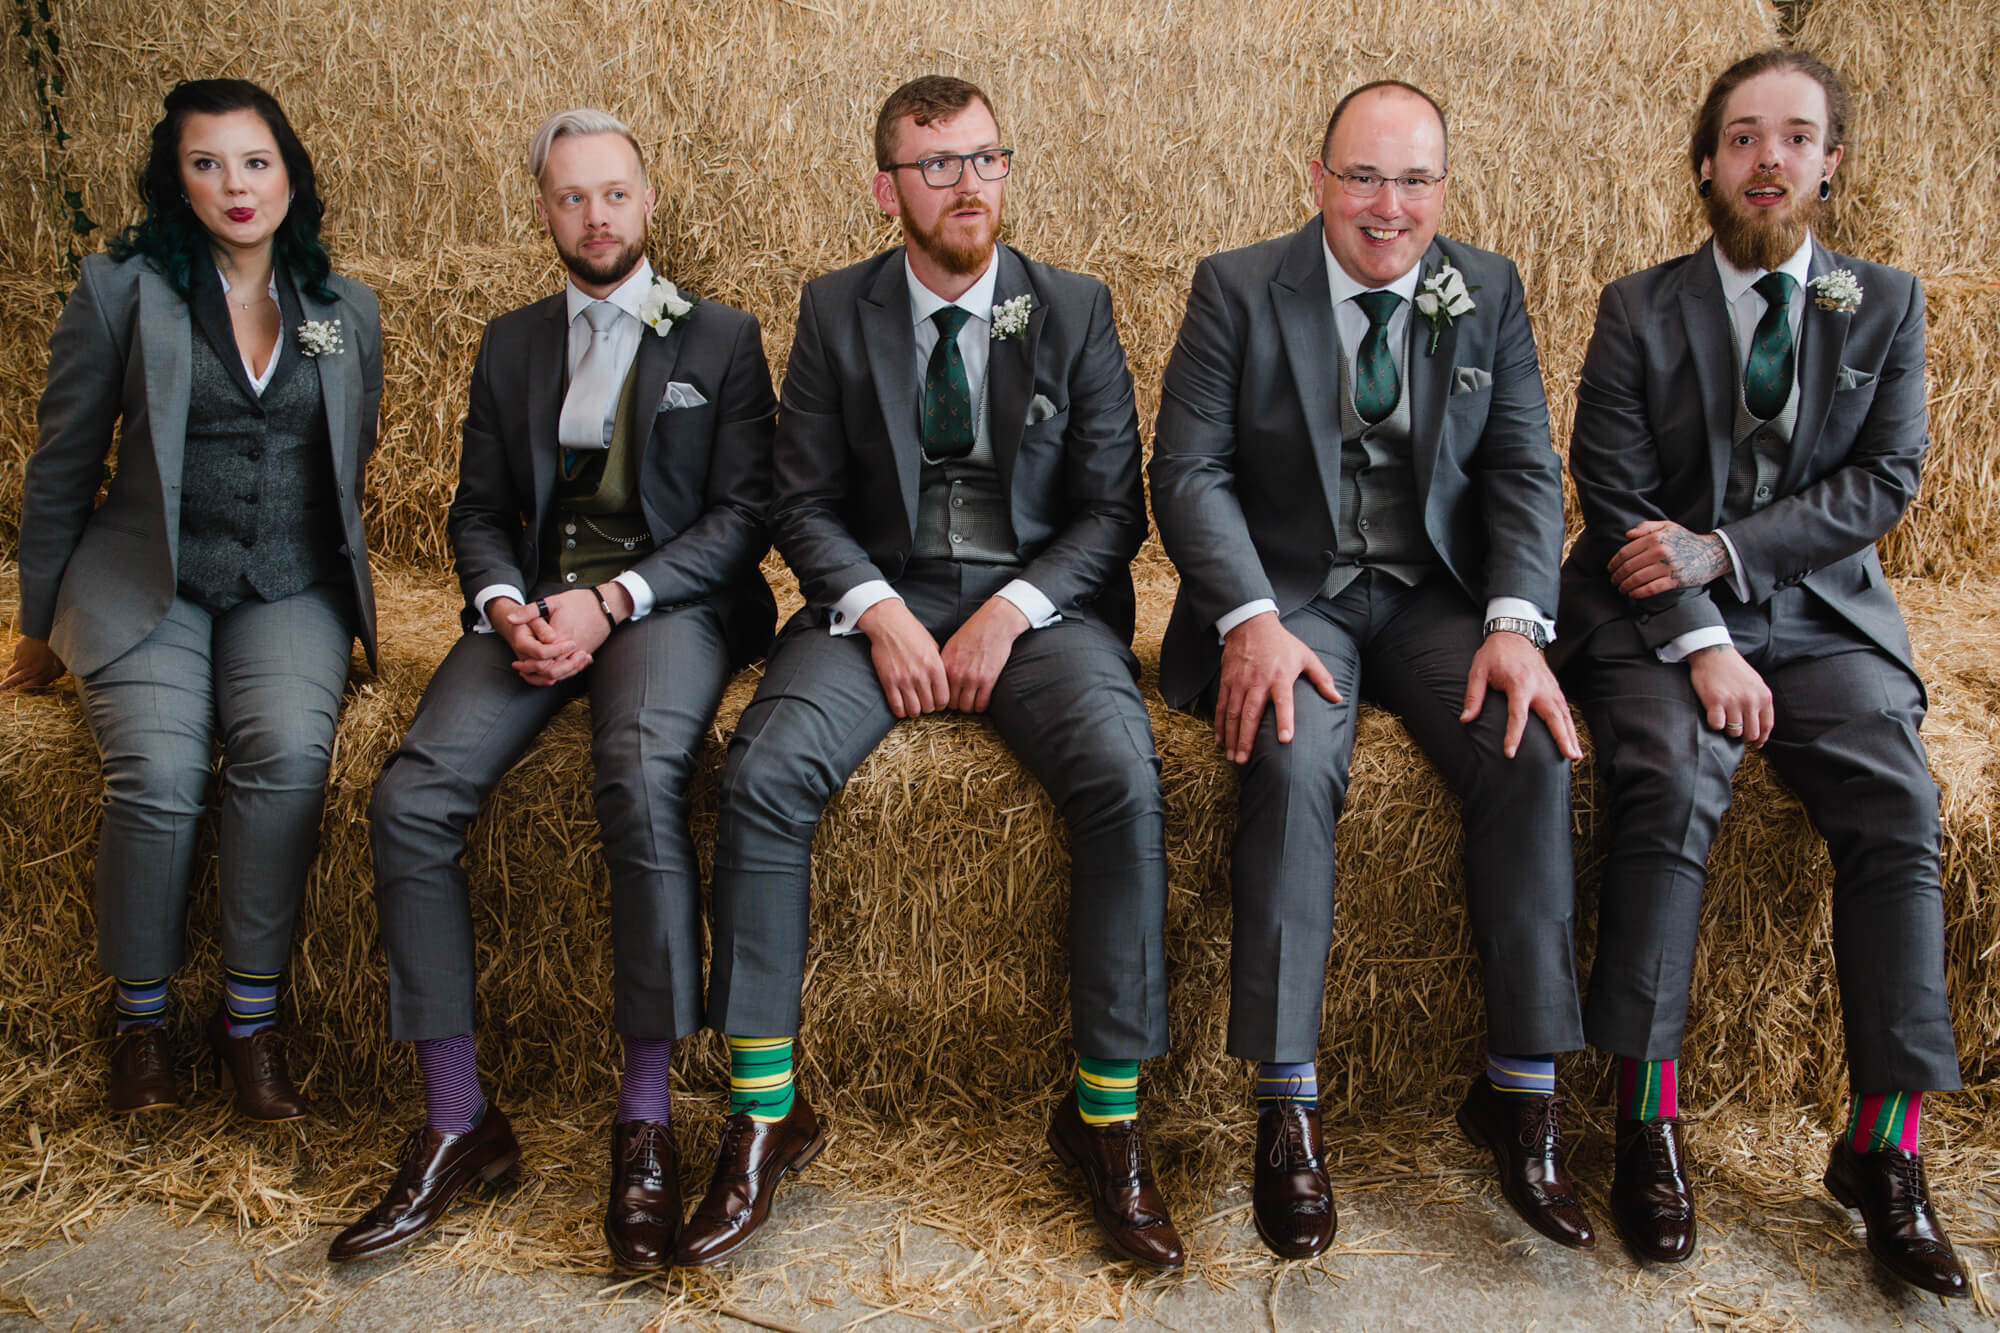 groomsmen sitting on hay bales in candid photography portrait